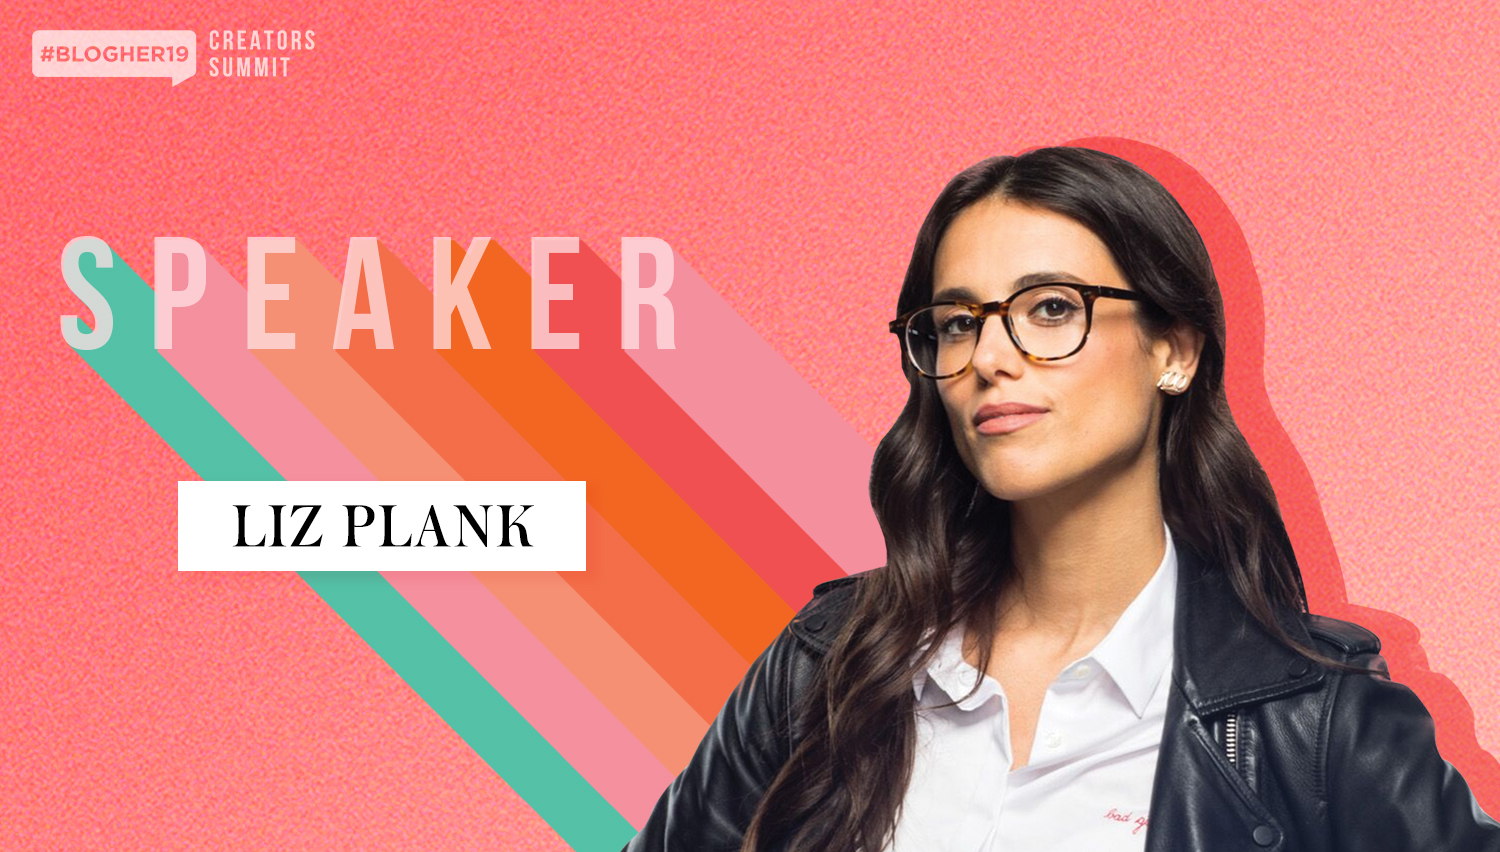 Join Liz at #BlogHer19 Creators Summit - This fem-powered author, journalist and the Executive Producer of at Vox Media is here to show all of us how we can use our platforms to make the world a more just and better place for all.